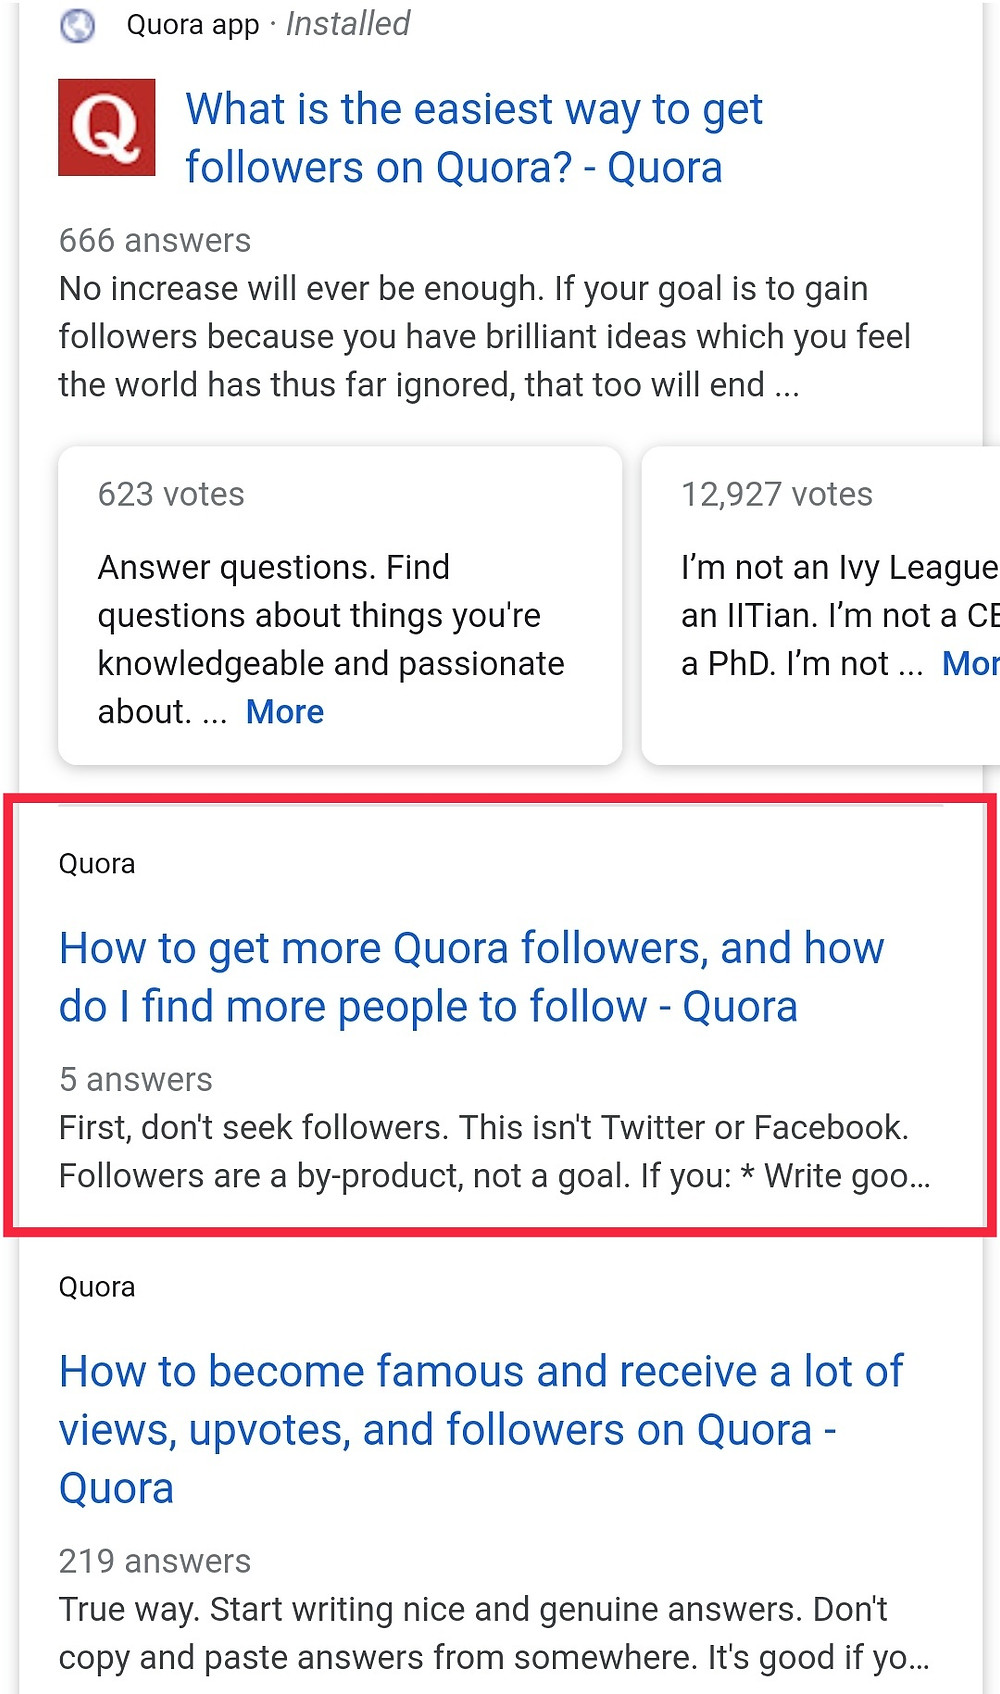 How to Get More Followers on Quora